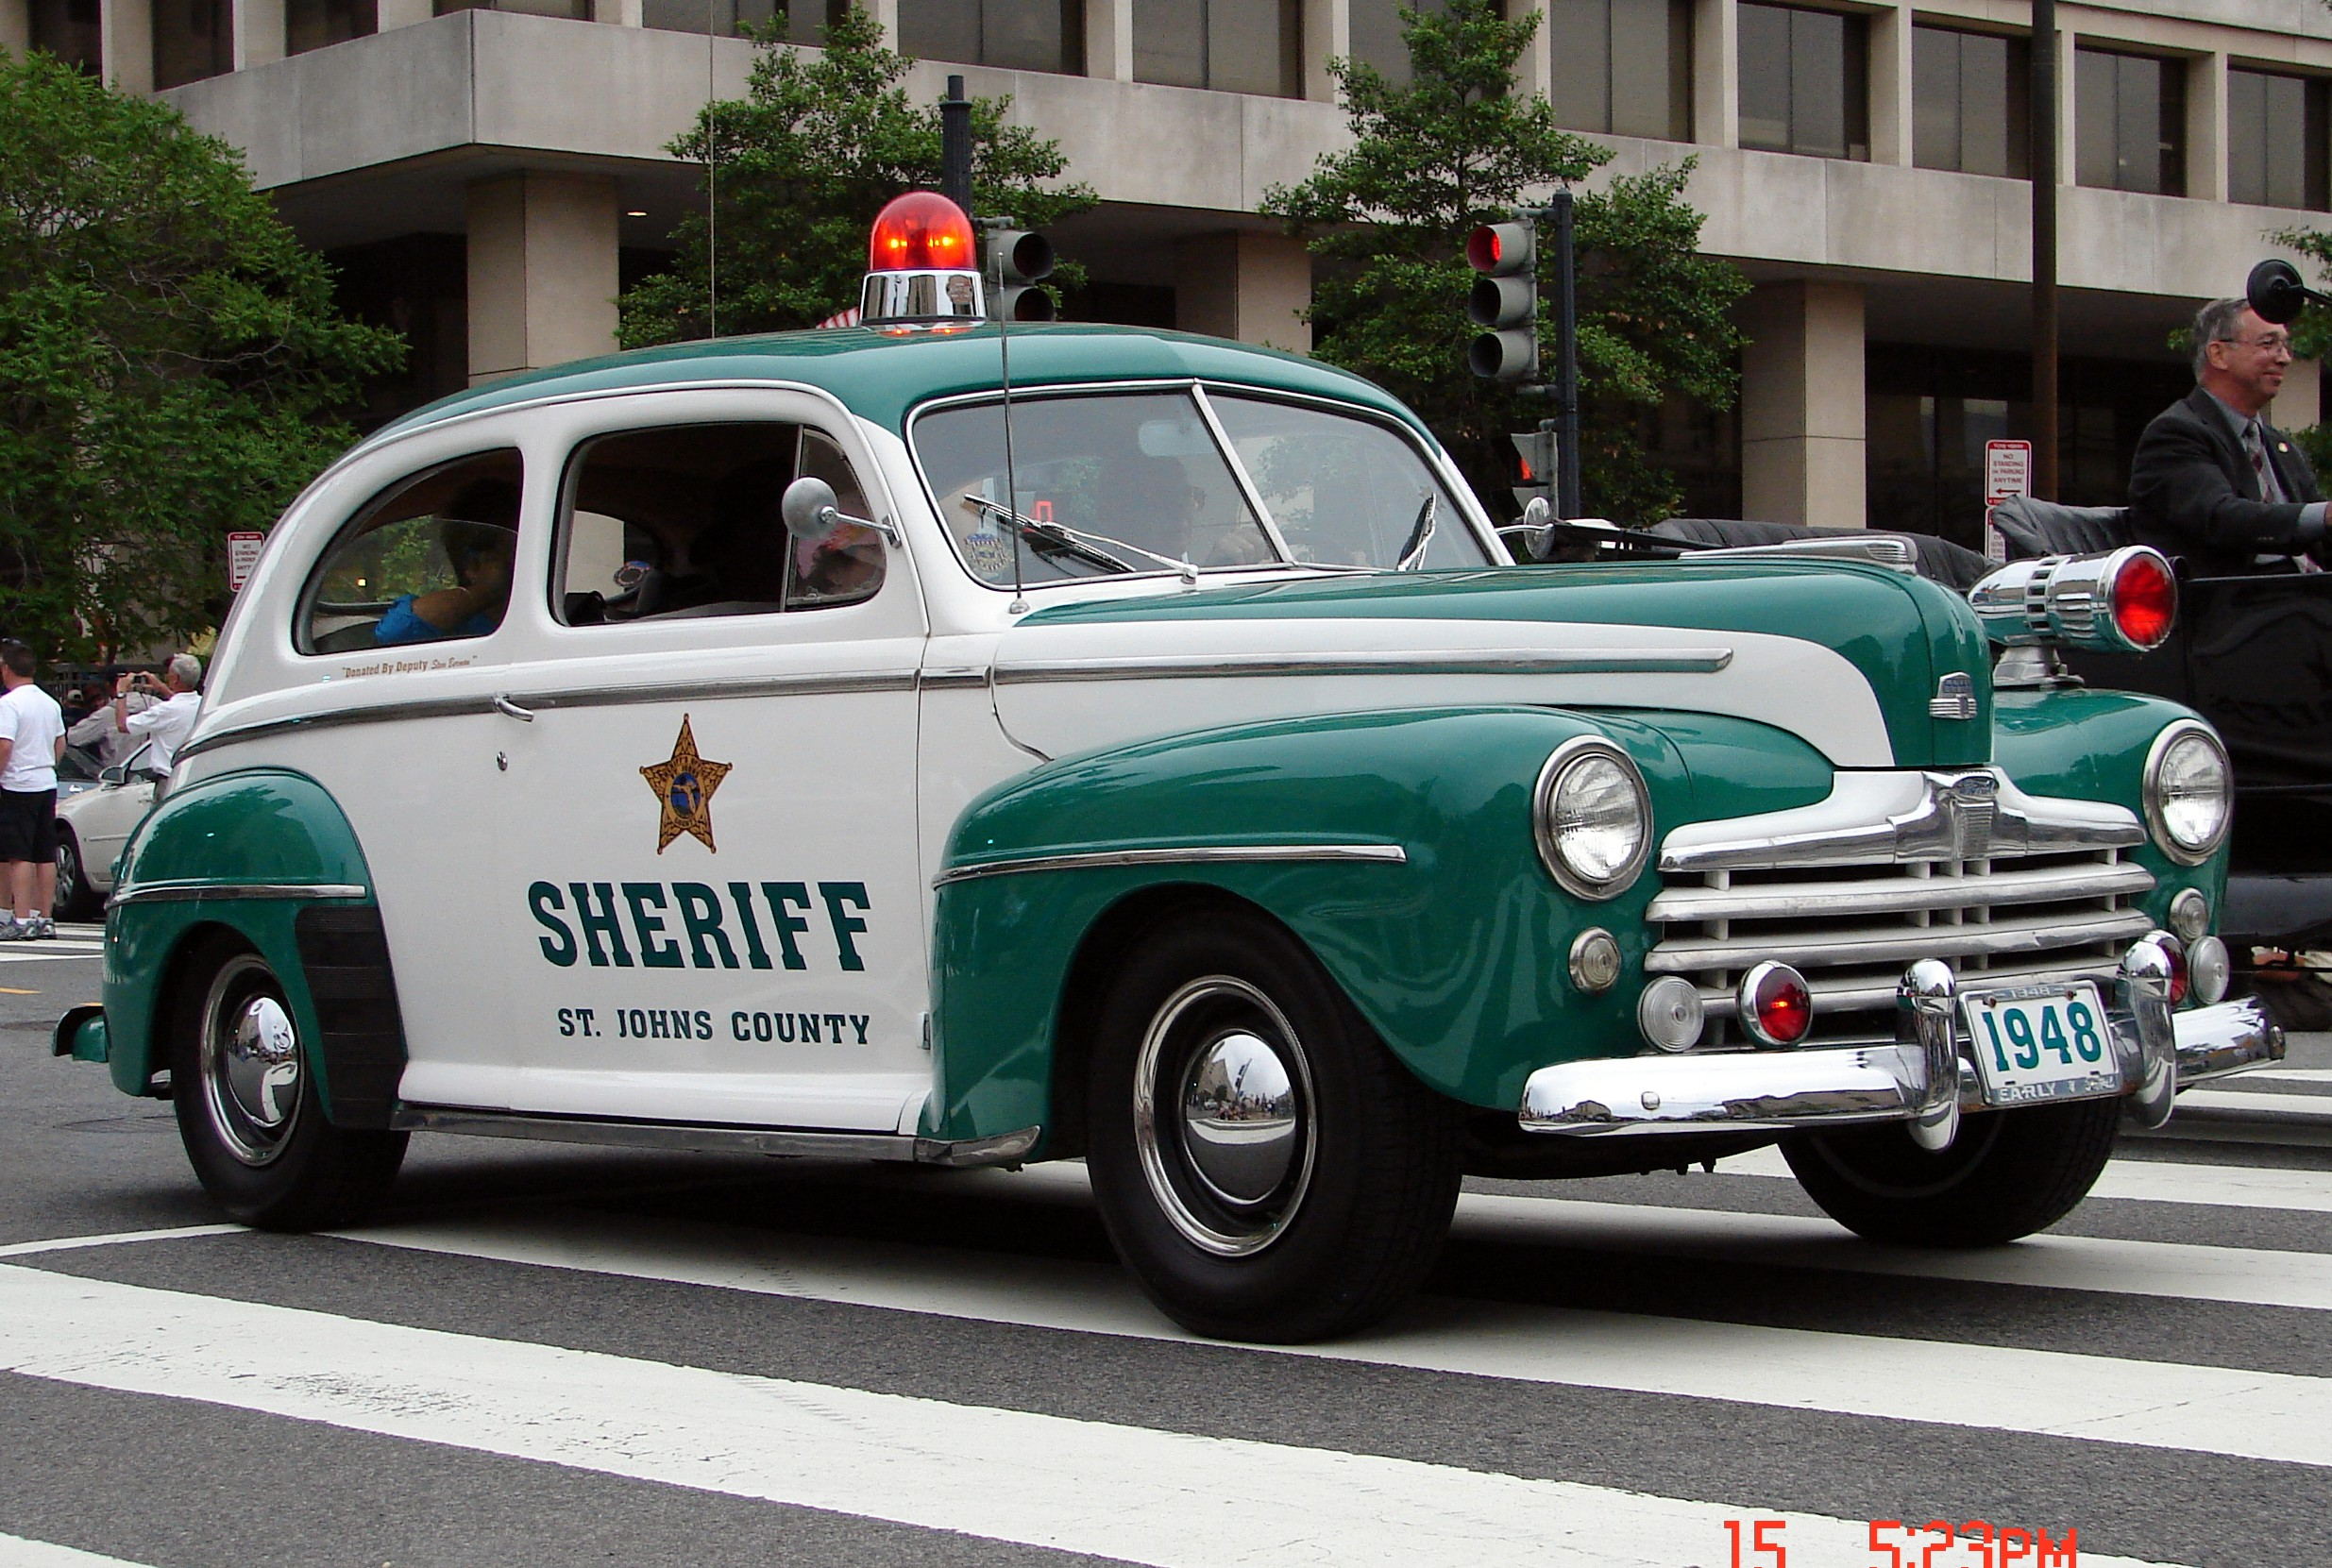 Sheriff Ford And Sheriff Department On Pinterest